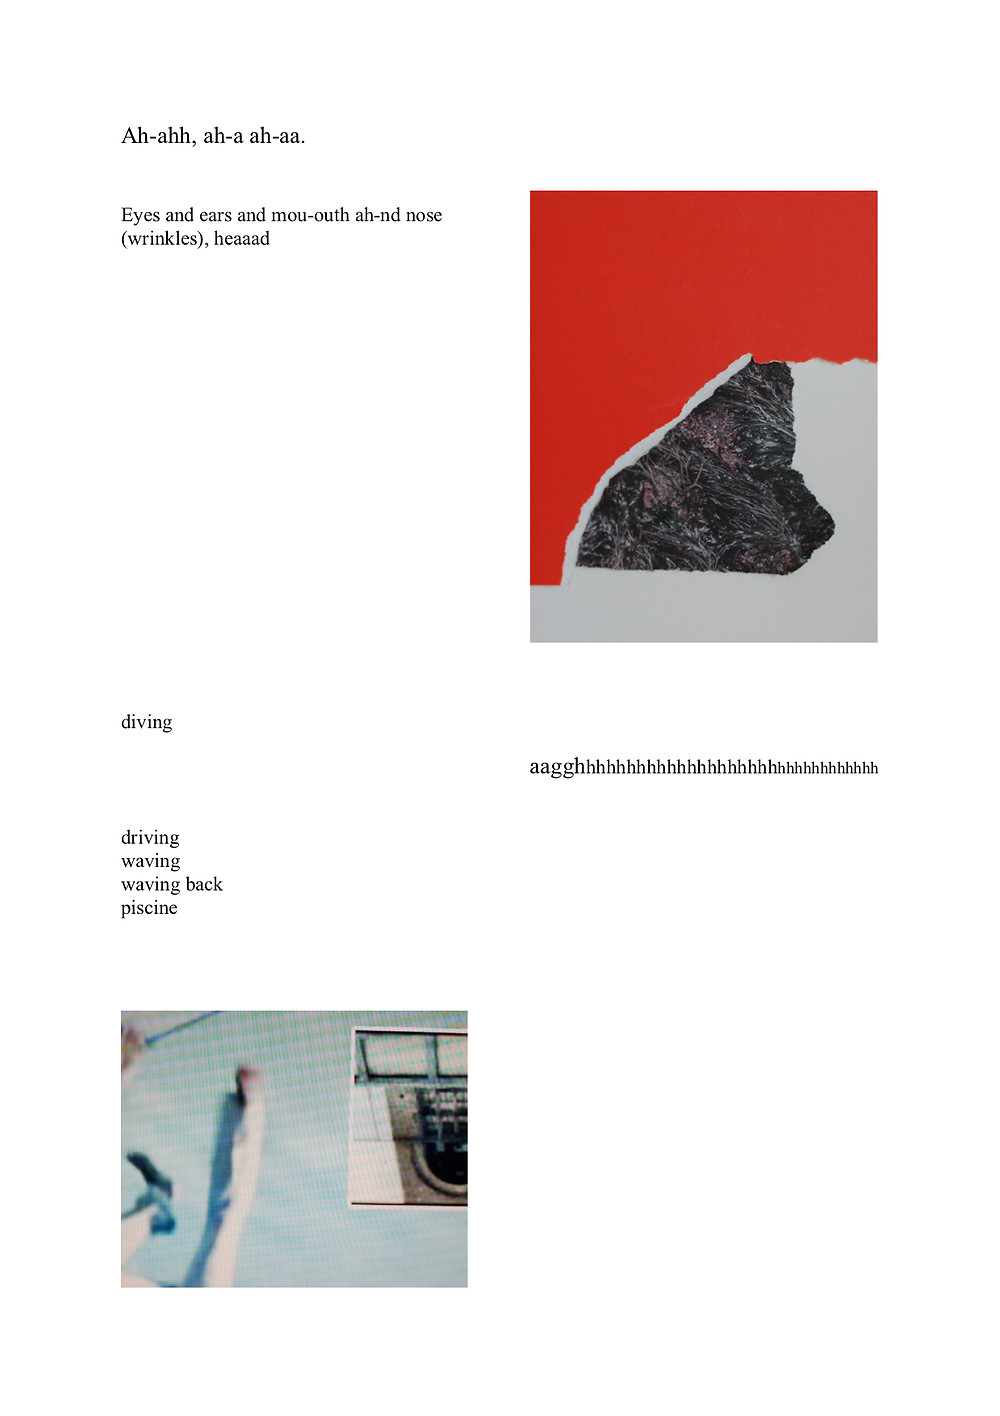 Final page of the essay. A long picture takes up a large part of the page interspersed with text, situated on the left side with bright redd background stuck beside a stone like shaped dark material patch sitting over a greay background. At the bottom of the page on the left hand side following the text is the same image from the beginning of the piece, of a screenshot blurred with a faded blue bacgroun and a white trouser leg seen entering the frame from a bird's eye view.